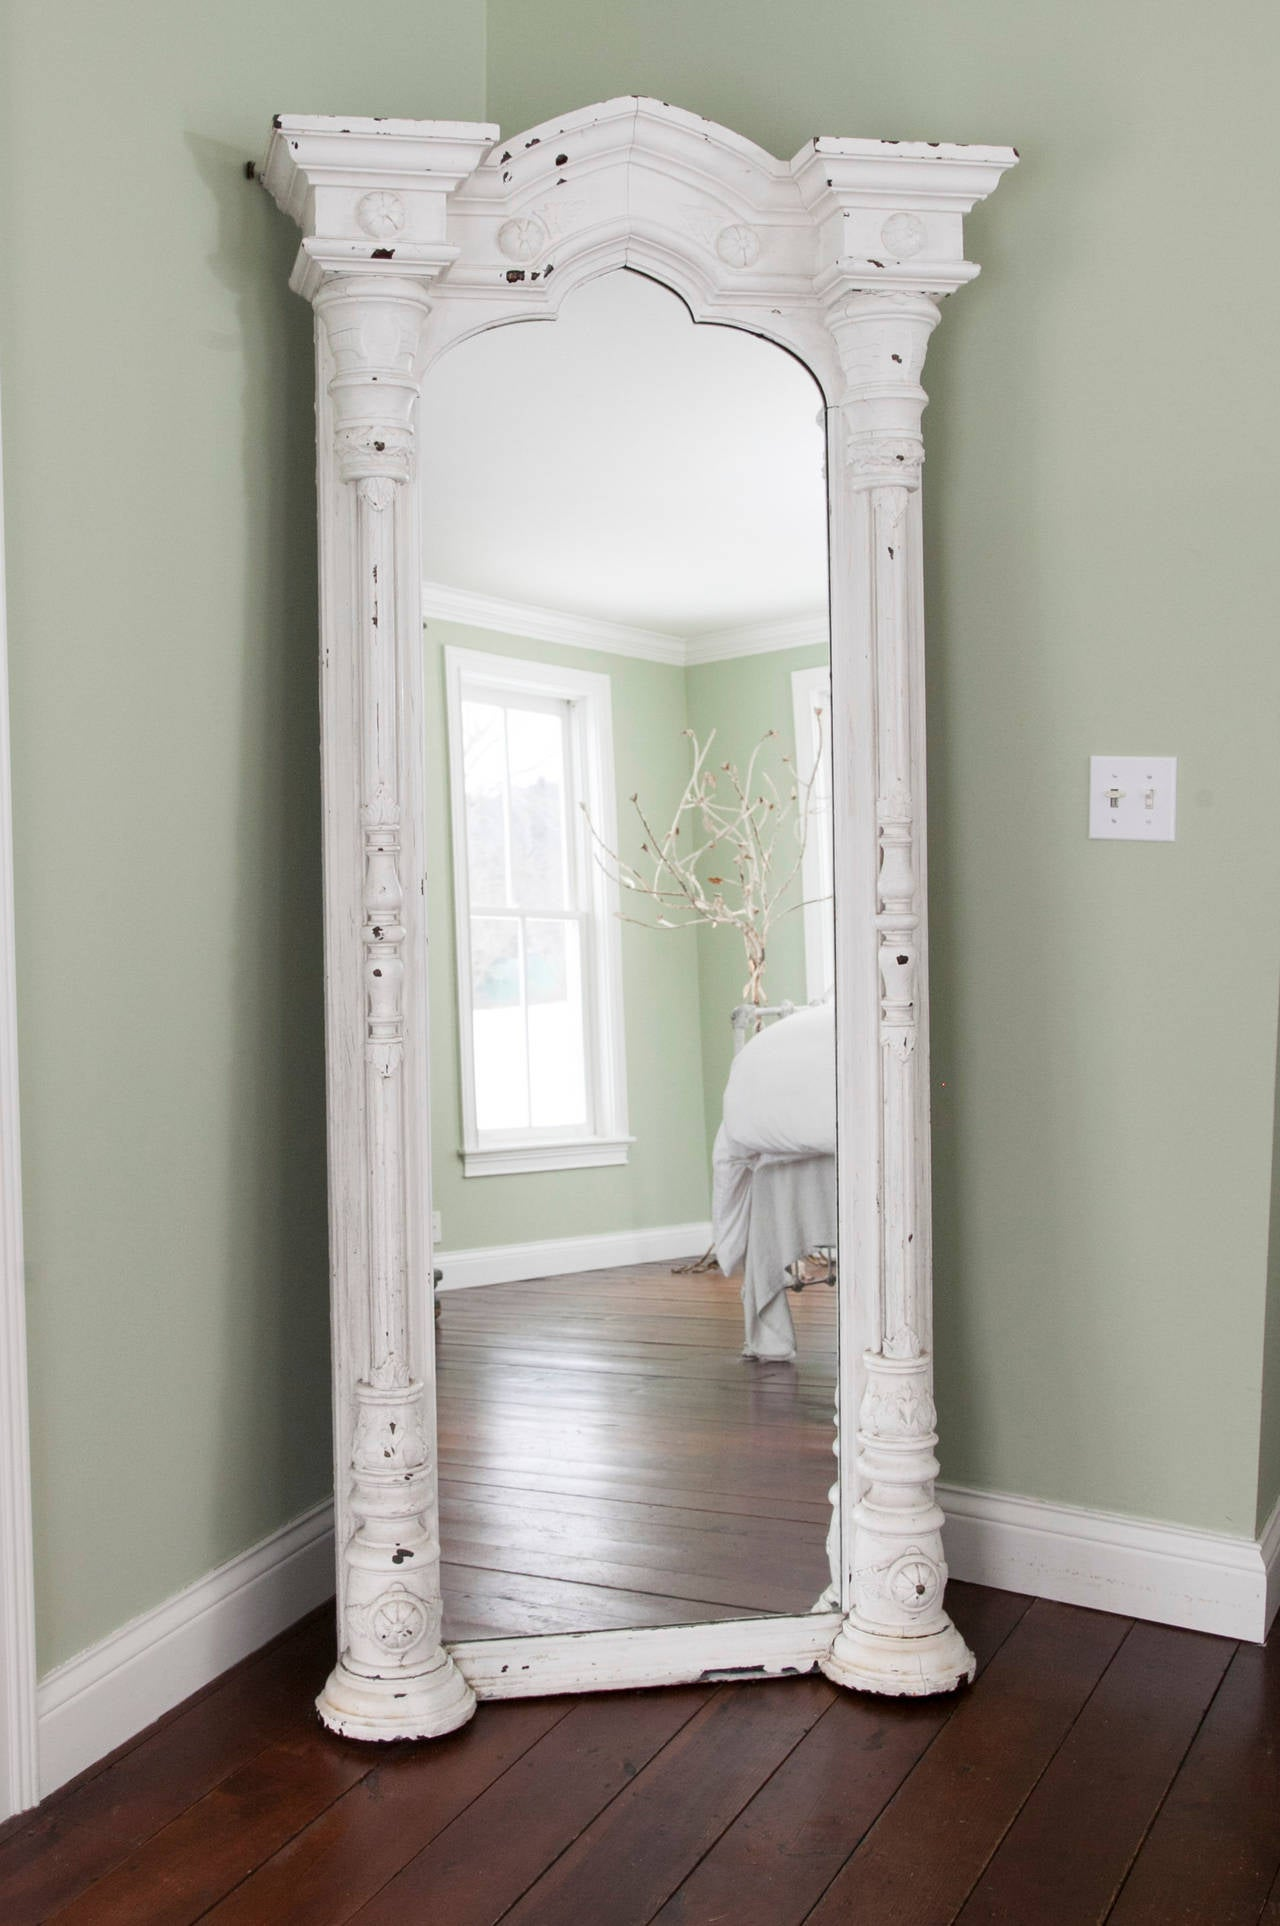 White painted walnut mirror, 19th century France, loaded with intricate architectural detail.